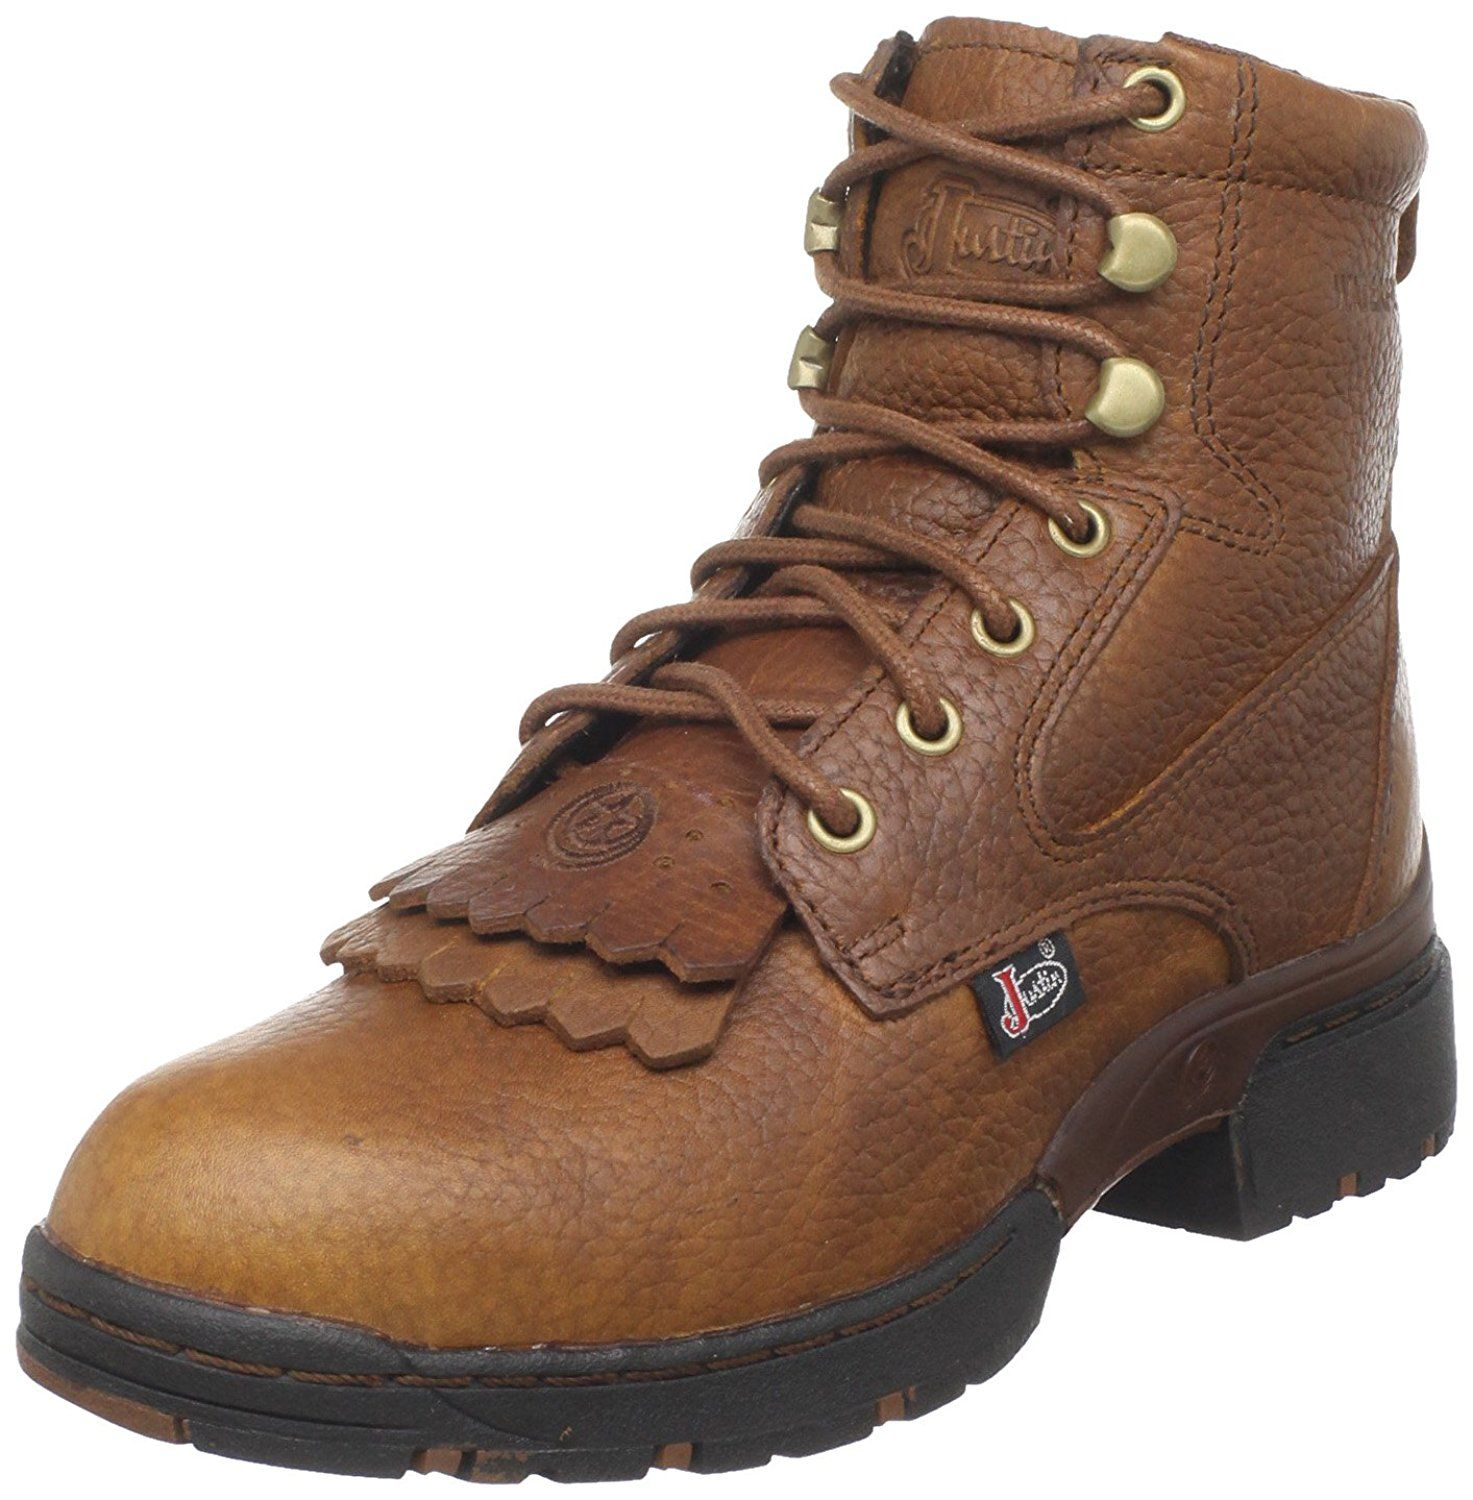 Justin Boots Women S George Strait L0919 Series 6 Waterproof Lace Up Boot Check Out This Great Image Justin Boots Justin Boots Womens Cowboy Boots Women